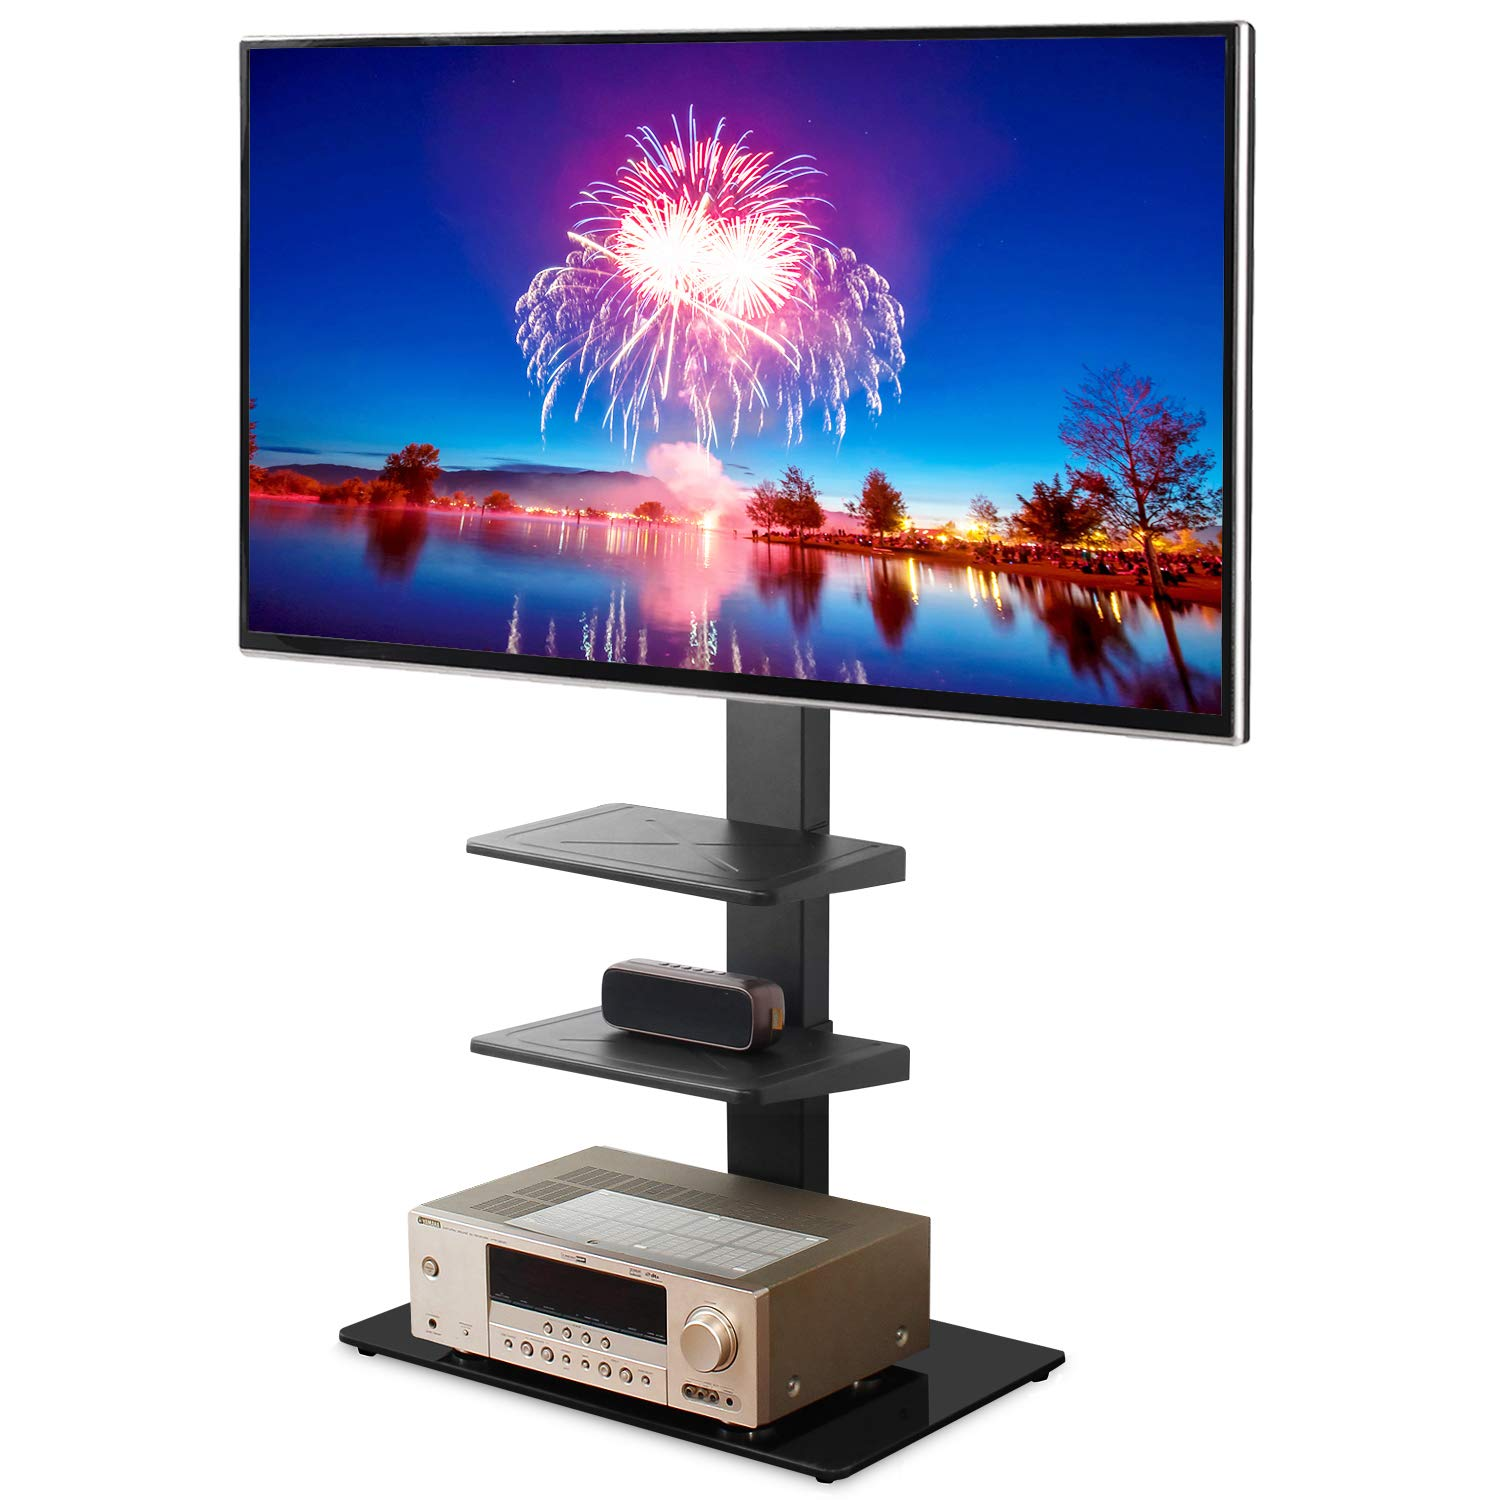 Rfiver Universal Floor TV Stand with Swivel Mount and Adjustable Media Shelves for 32 37 43 47 50 55 60 65 inch Flat/Curved Screen TVs, Internal Wire Management and Tempered Glass Base, Black TF2002 by Rfiver